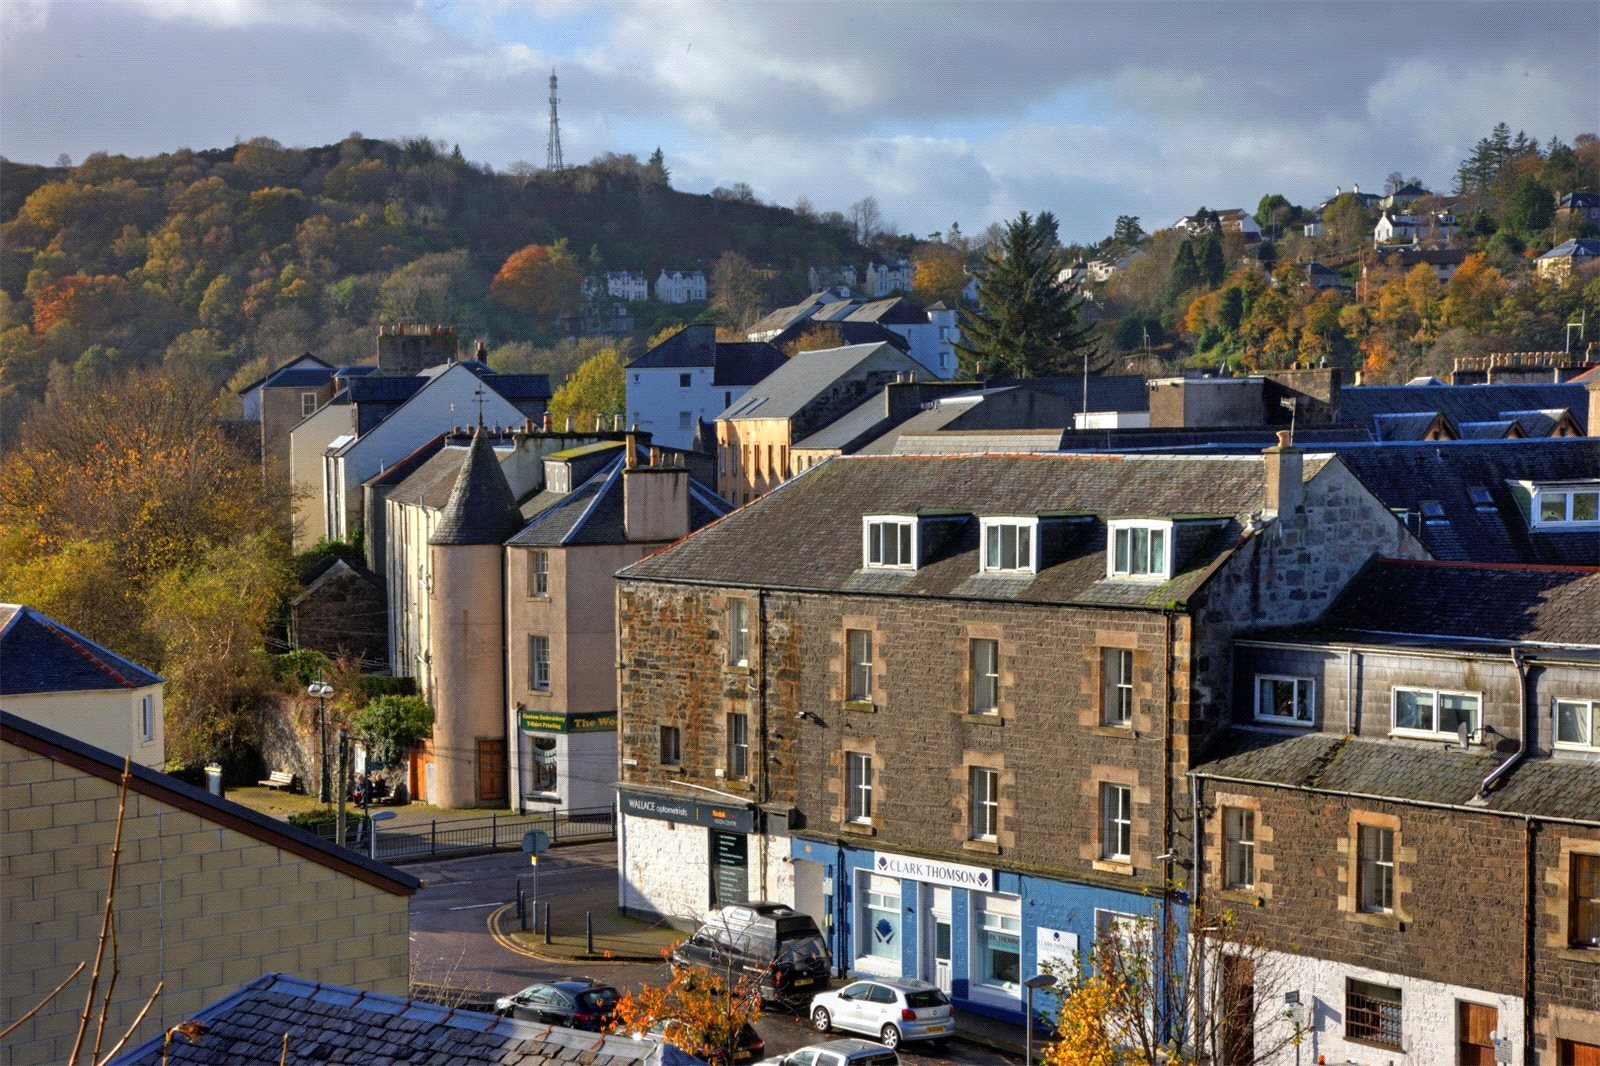 2 Bedrooms Land Commercial for sale in 21 Airds Crescent, Oban, Argyll and Bute, PA34